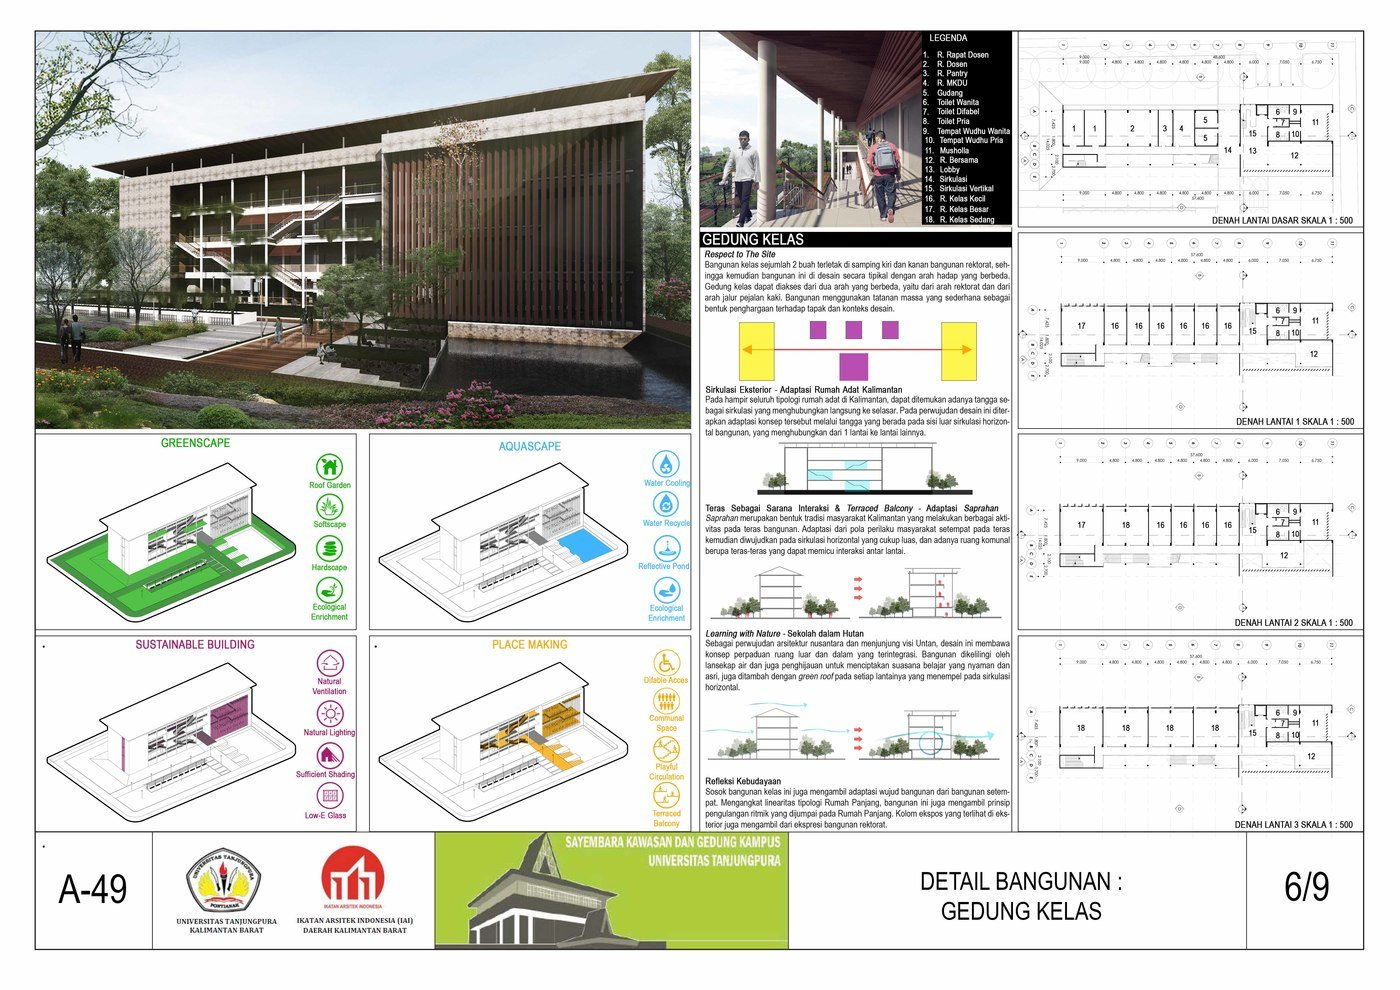 Universitas tanjungpura by steve asoes at coroflot be the first to comment on this project ccuart Gallery